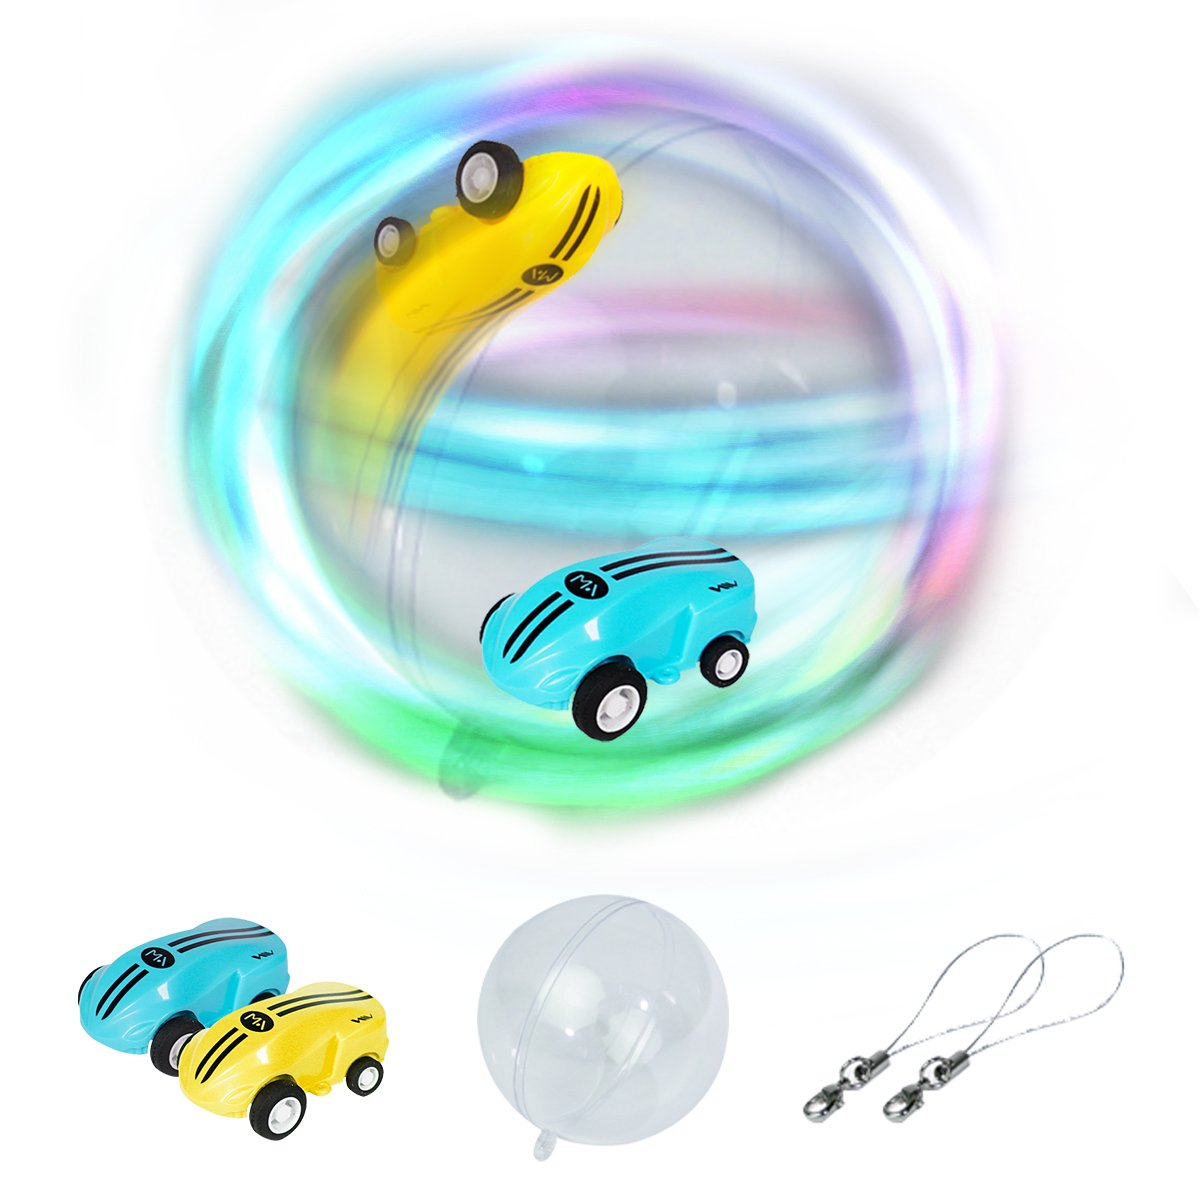 Remoking (2 cars)High Speed Mini Racing Stunt Cars Toys Game 25km/h 360 Spinning Fixed-Point Rotating Scrolling Recharger battery Cars with LED Light Bonus ball Good for Kids and Adults